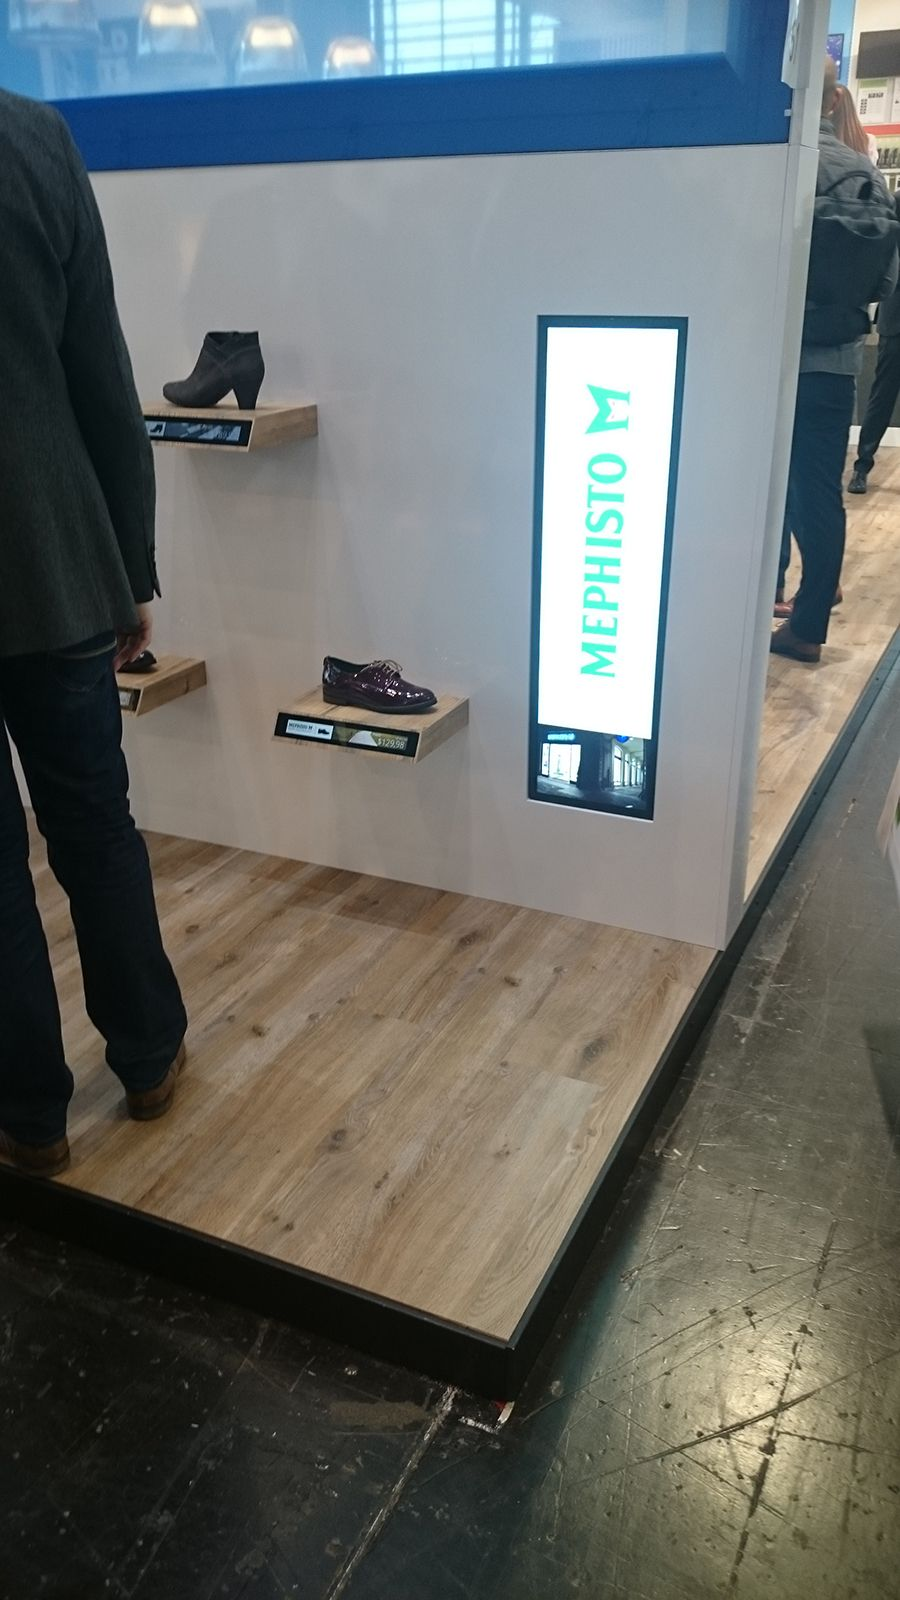 Valokehyksiä ja digitaalisia tauluja, joissa verkkokauppanäkymä. Digitaalisia kampanjahintoja hyllyn reunoissa.  euroshop. euroshop 2017. window display. fashion. visual merchandise. shop desing.